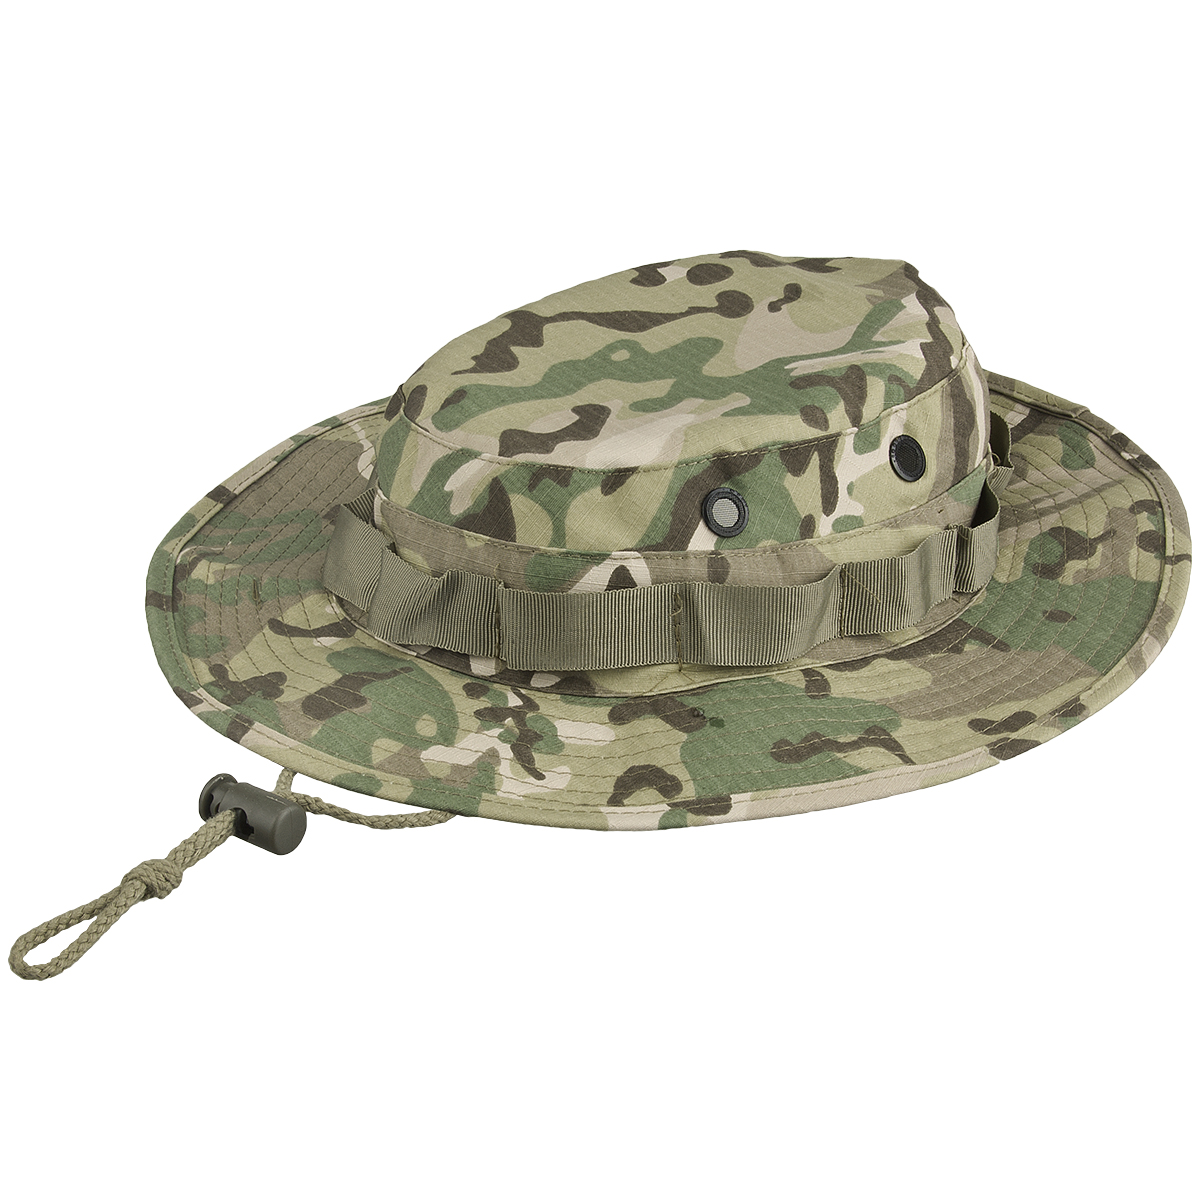 59aba205f2e22 Details about MFH GI Boonie Hat Ripstop Army Combat Jungle Bush Cap Us  Military Operation Camo